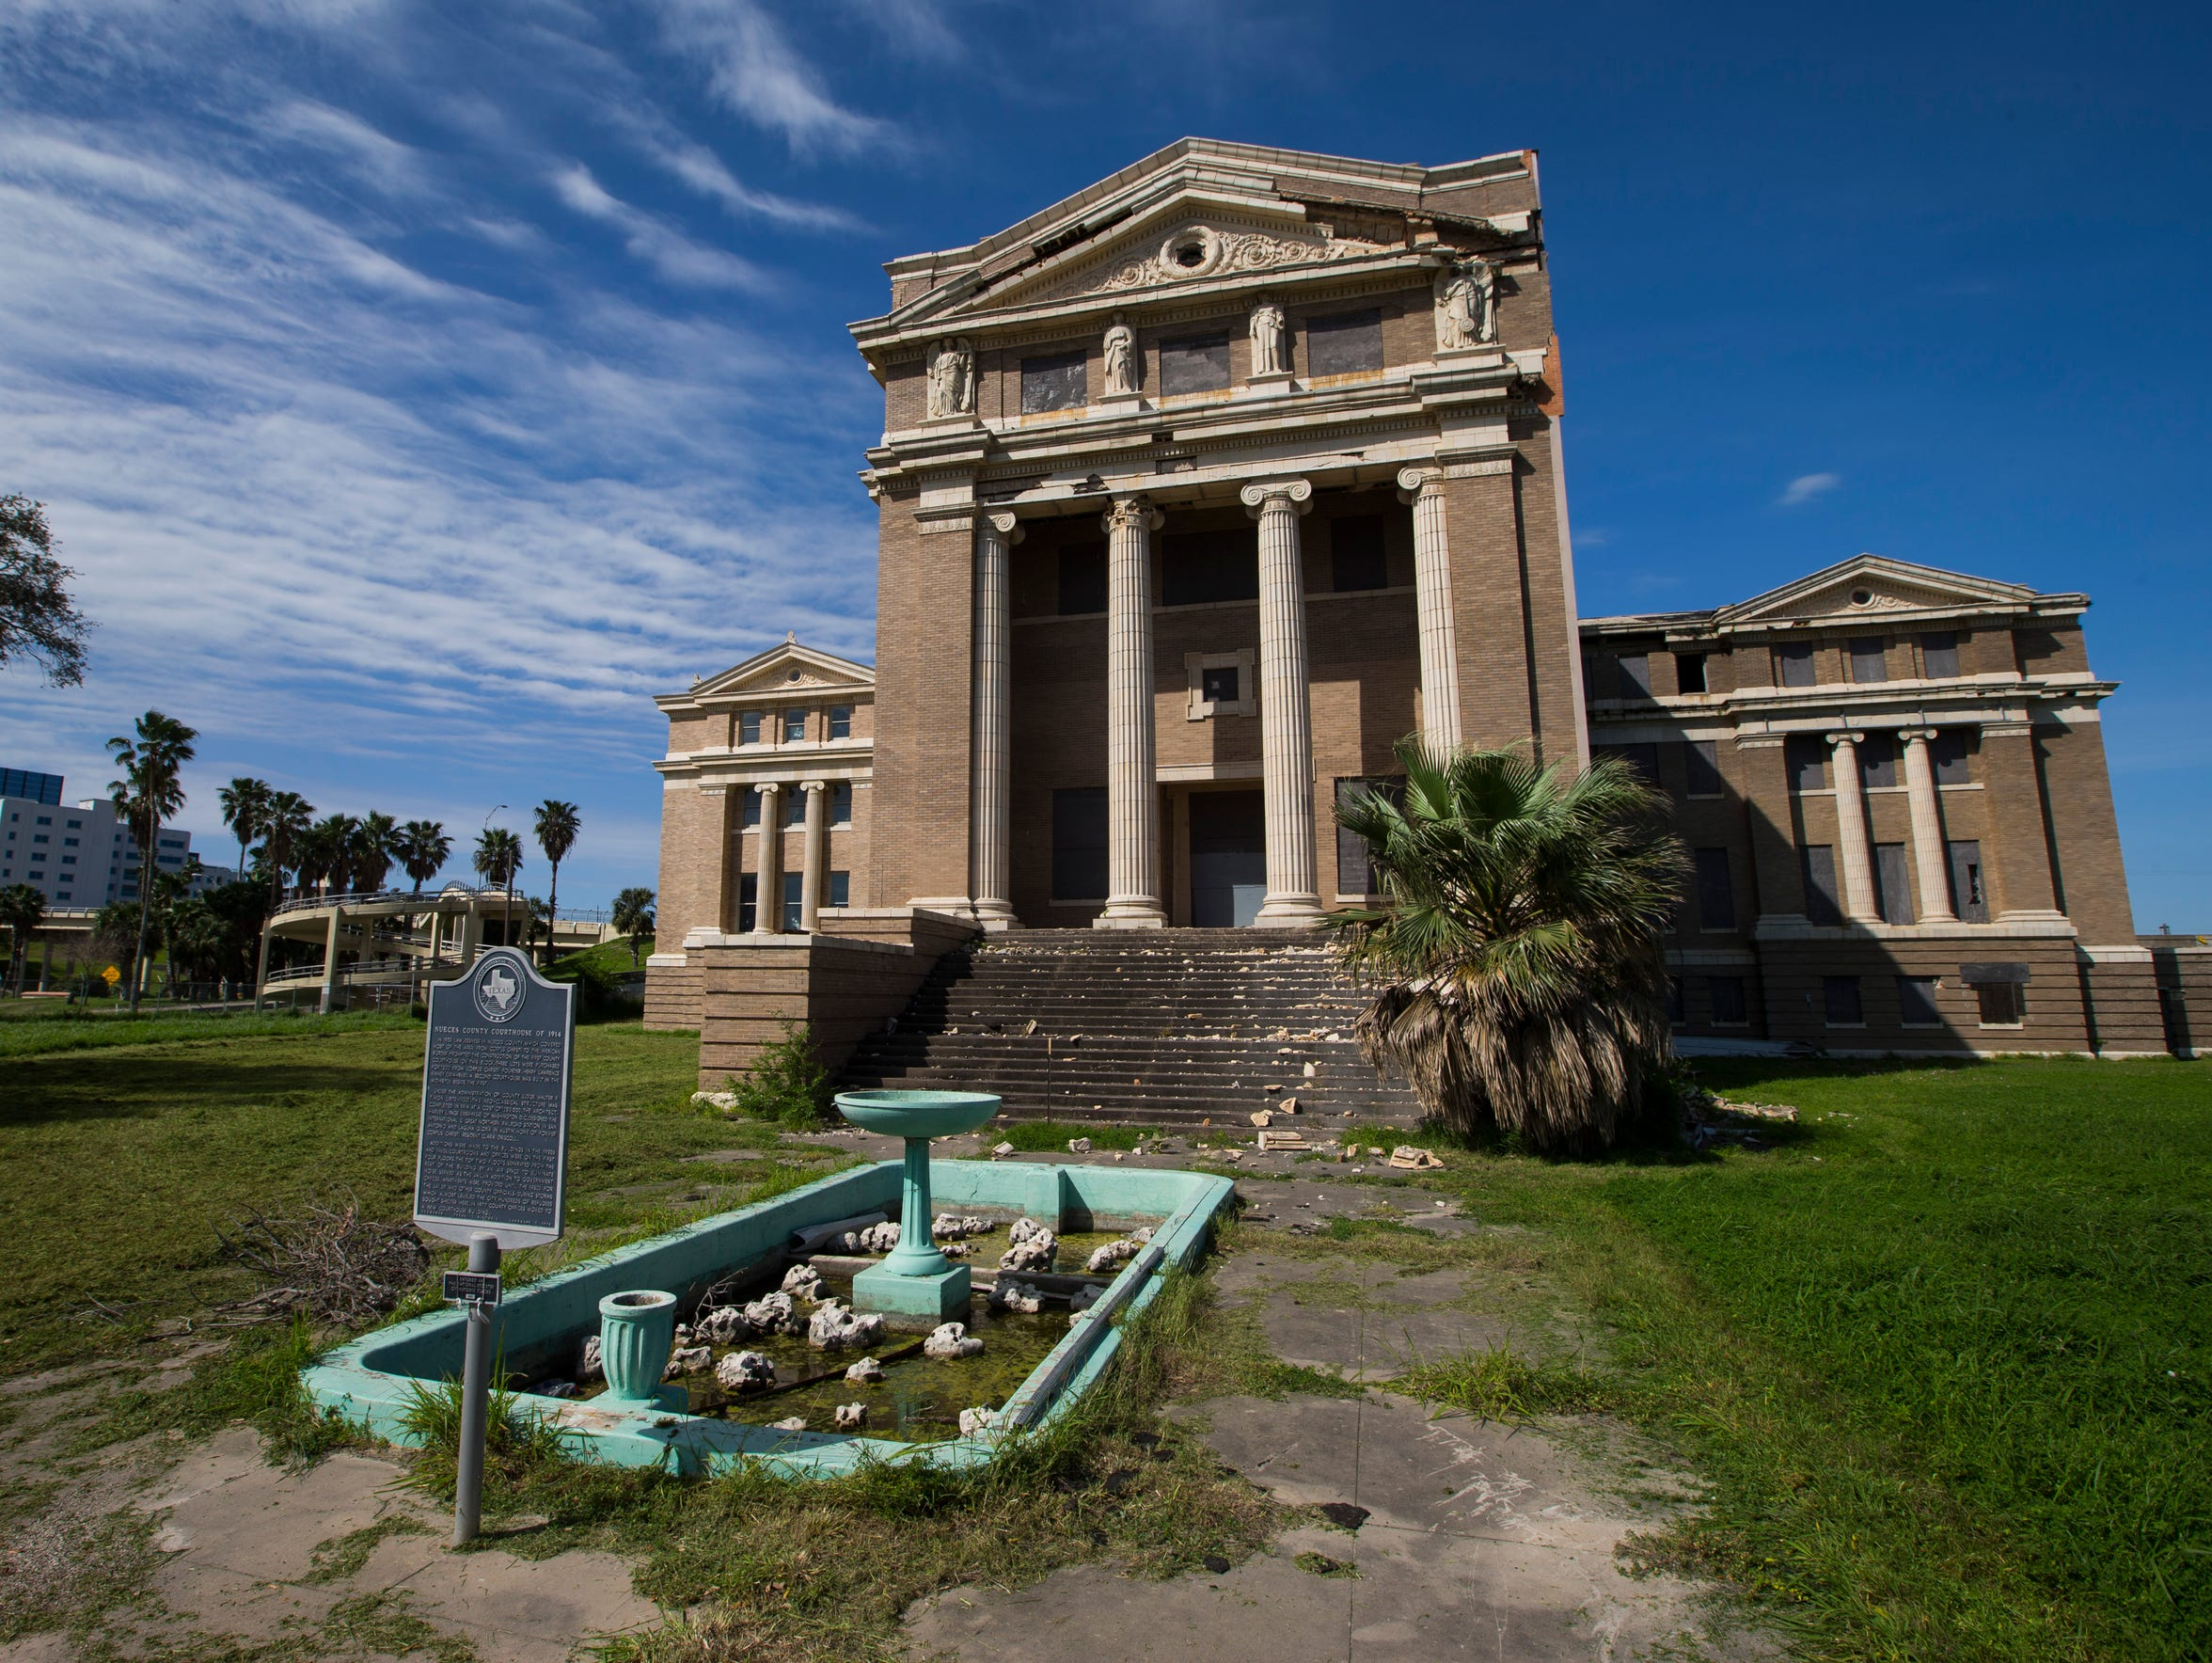 The former Nueces County Courthouse sits vacant on